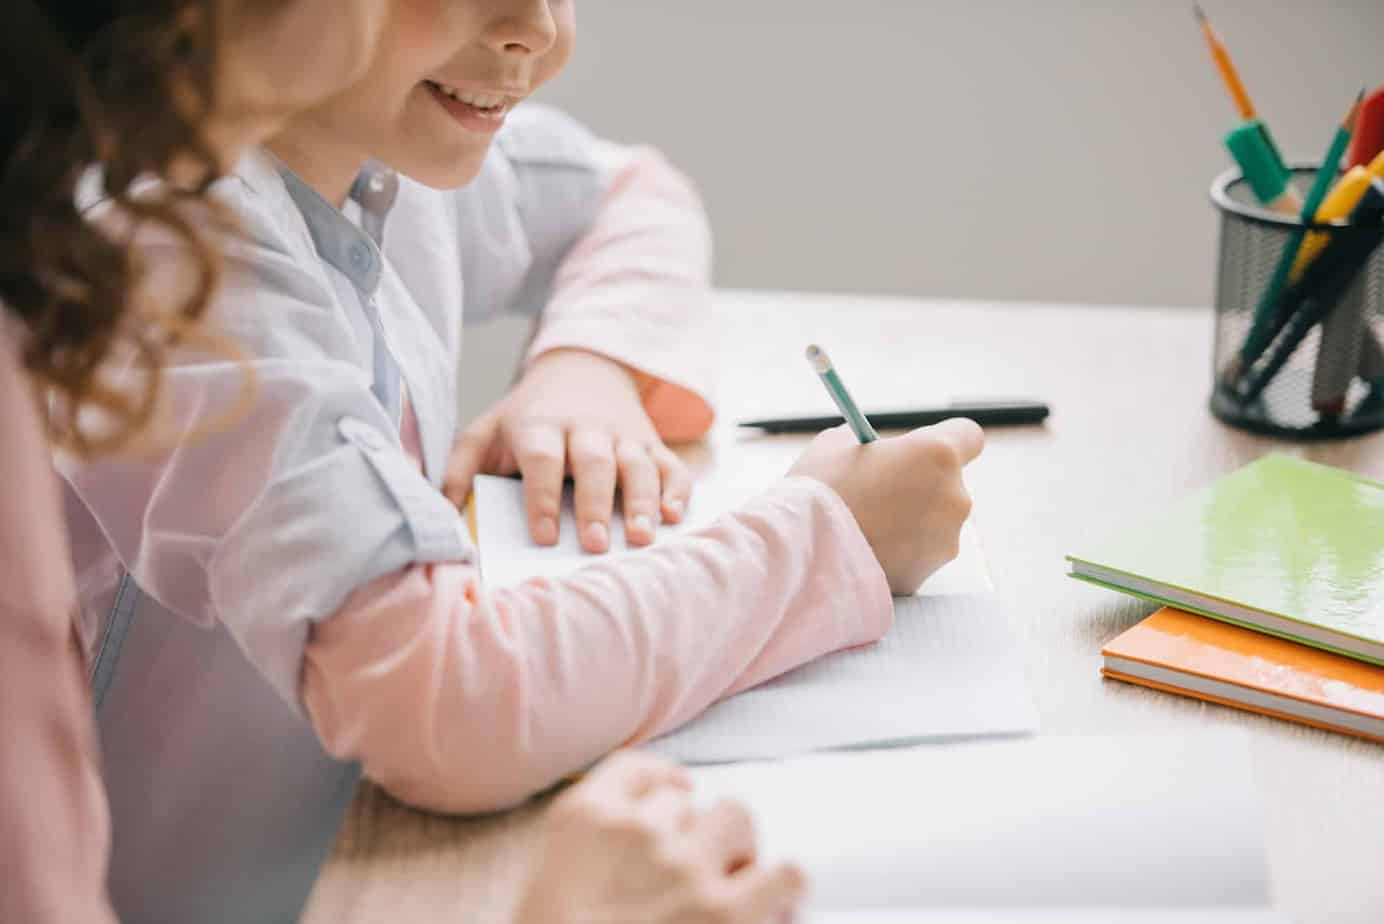 Are you considering homeschooling your kids this year or possibly in the future? This is a balanced list of pros and cons of homeschooling to help you make an informed and confident school choice decision.